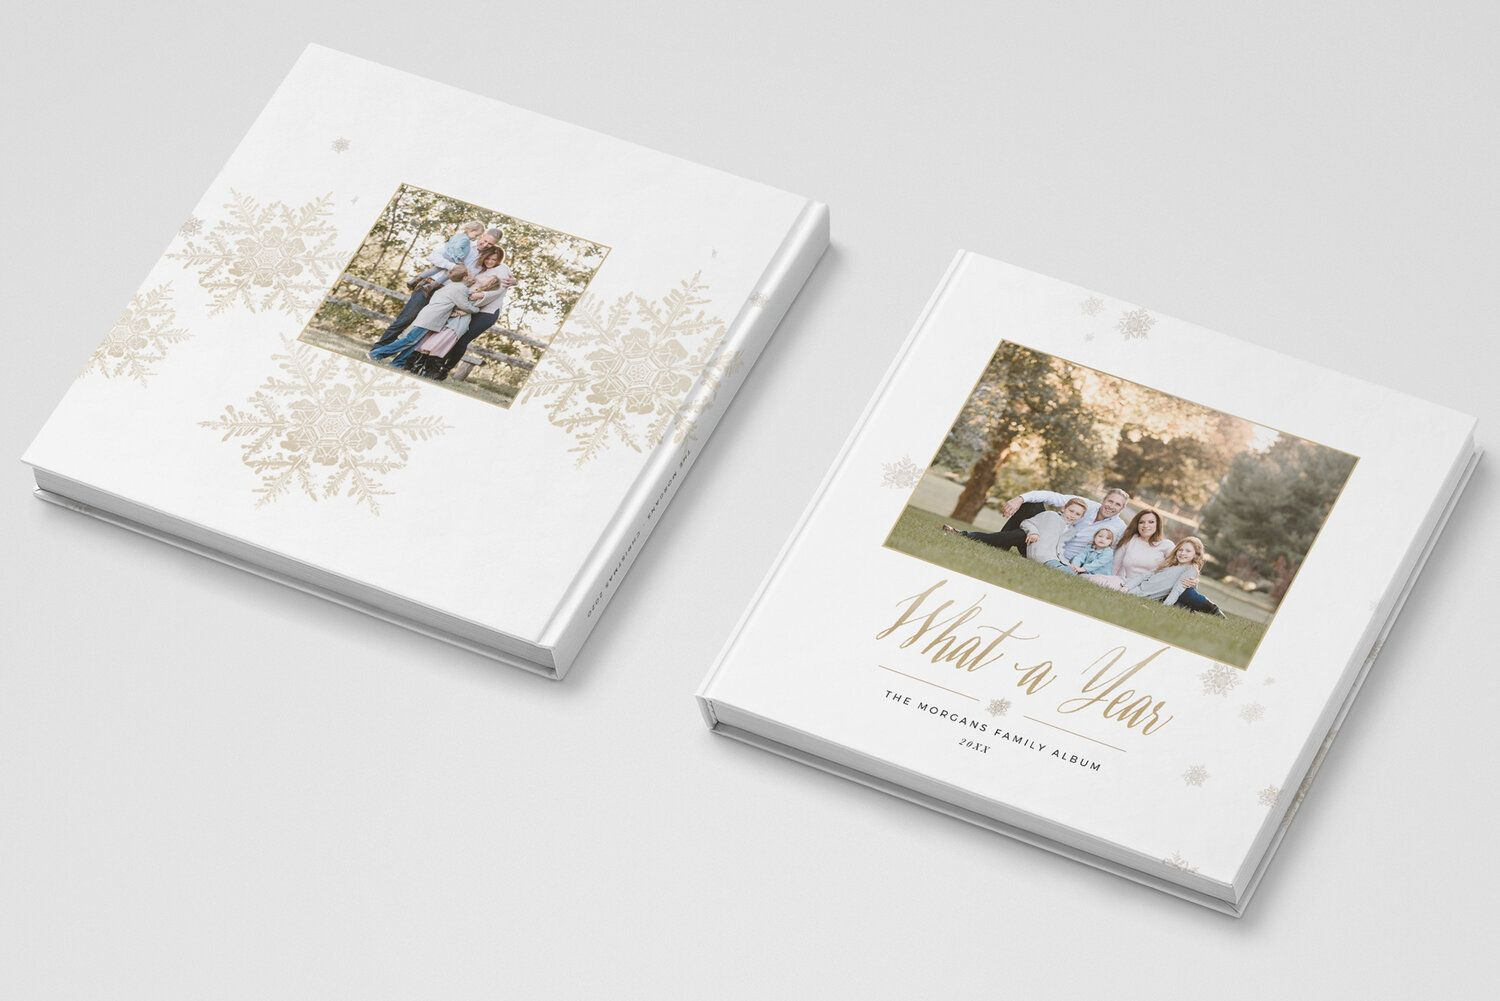 Photo Book Cover Template For Photographers Christmas Photo Album Cover Template By Stephanie Design Photo Book Cover Photo Album Covers Book Cover Template